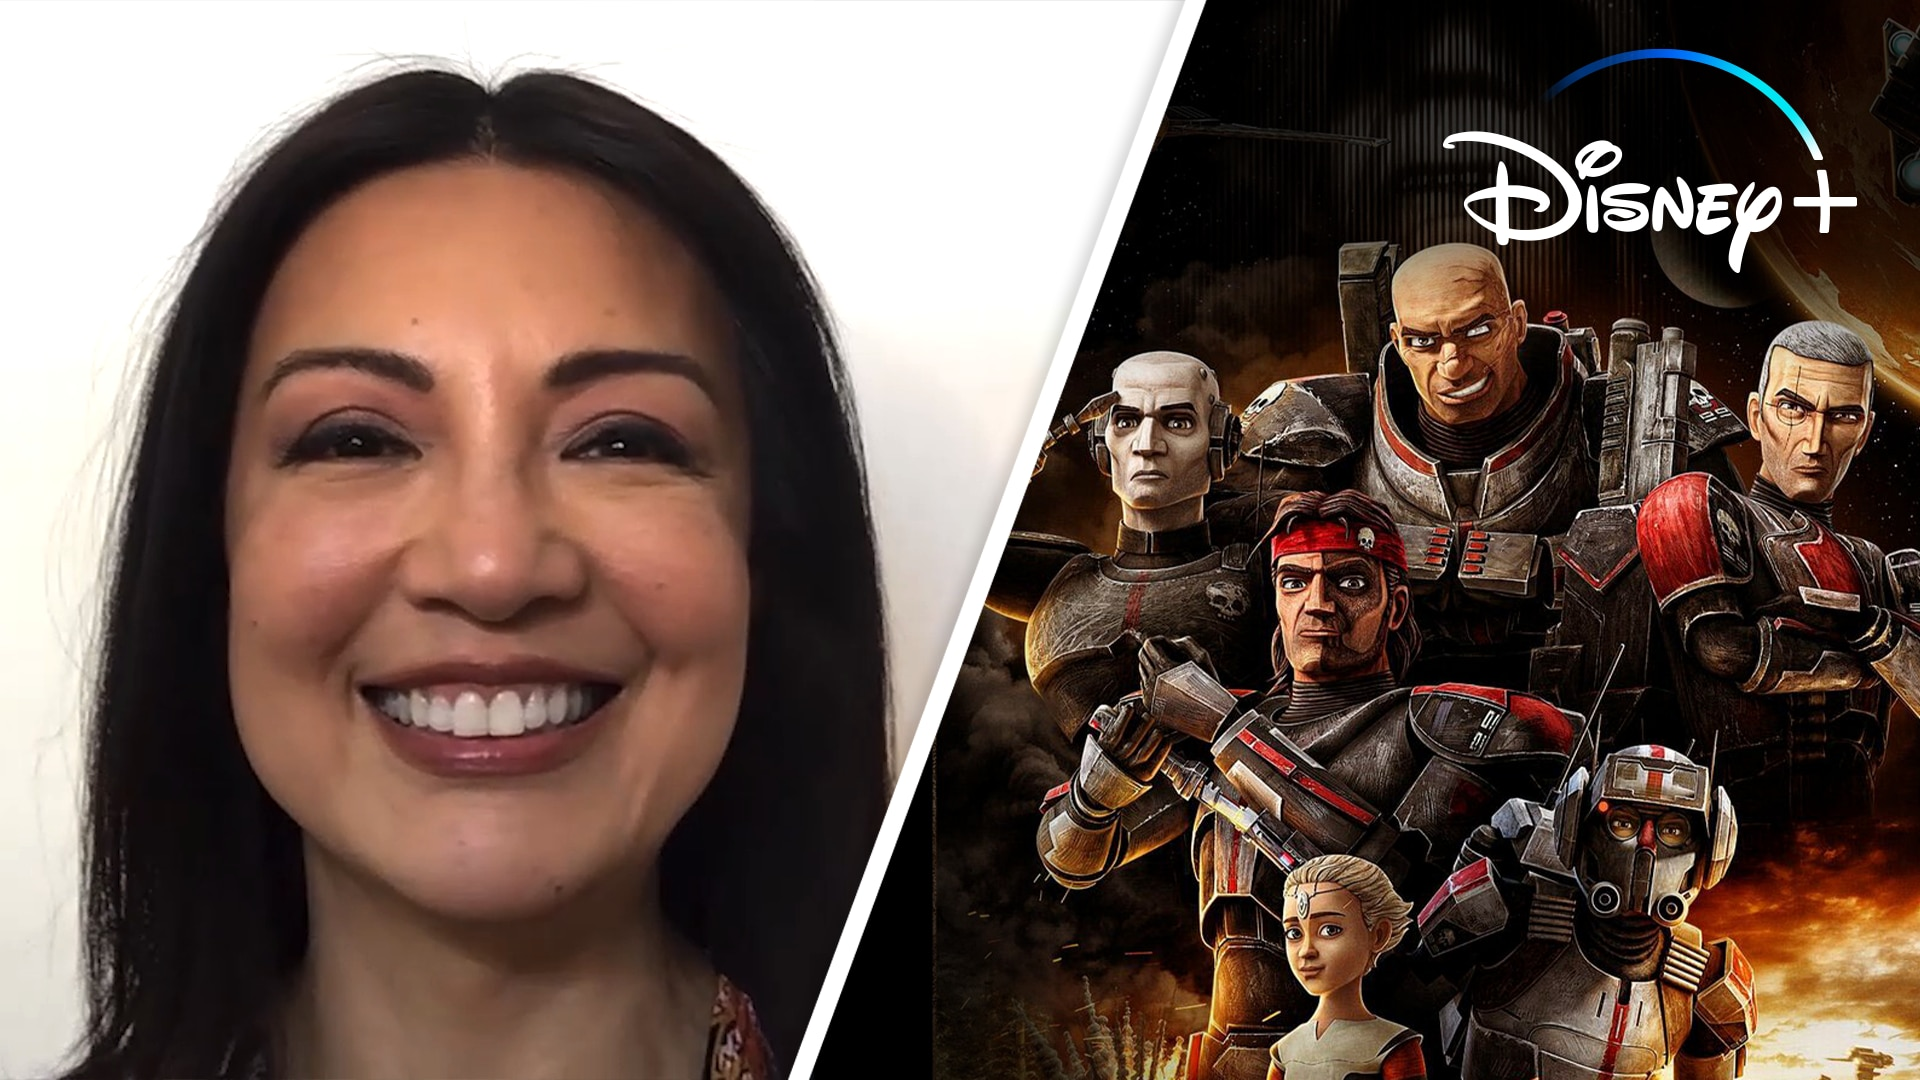 Ming-Na Wen Reacts to Star Wars: The Bad Batch Characters | Disney+